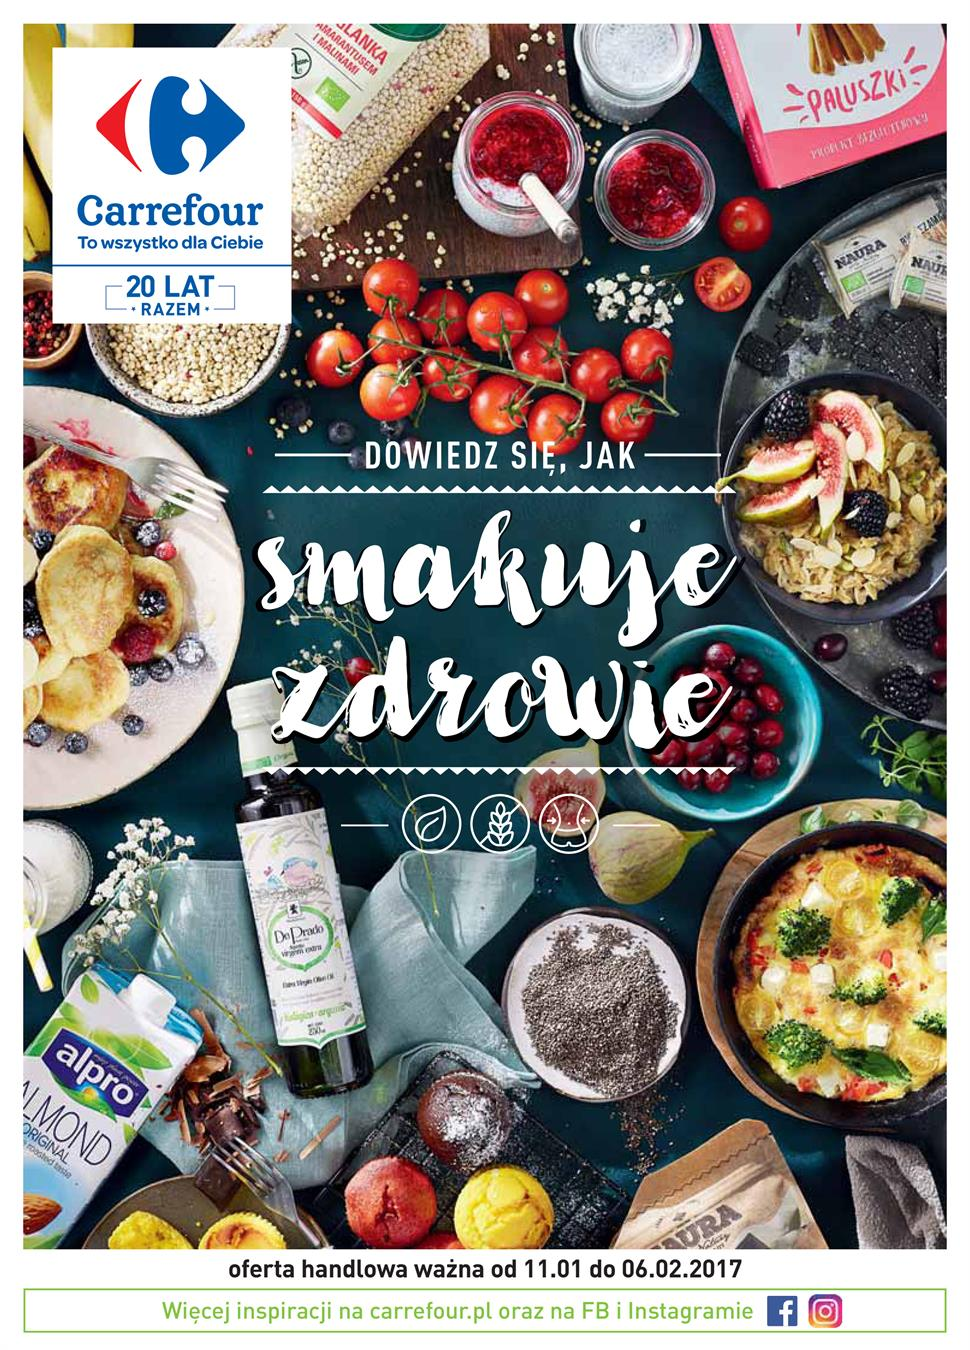 Gazetka Carrefour Polska Sp. z o.o. nr 8 od 2017-01-11 do 2017-02-06